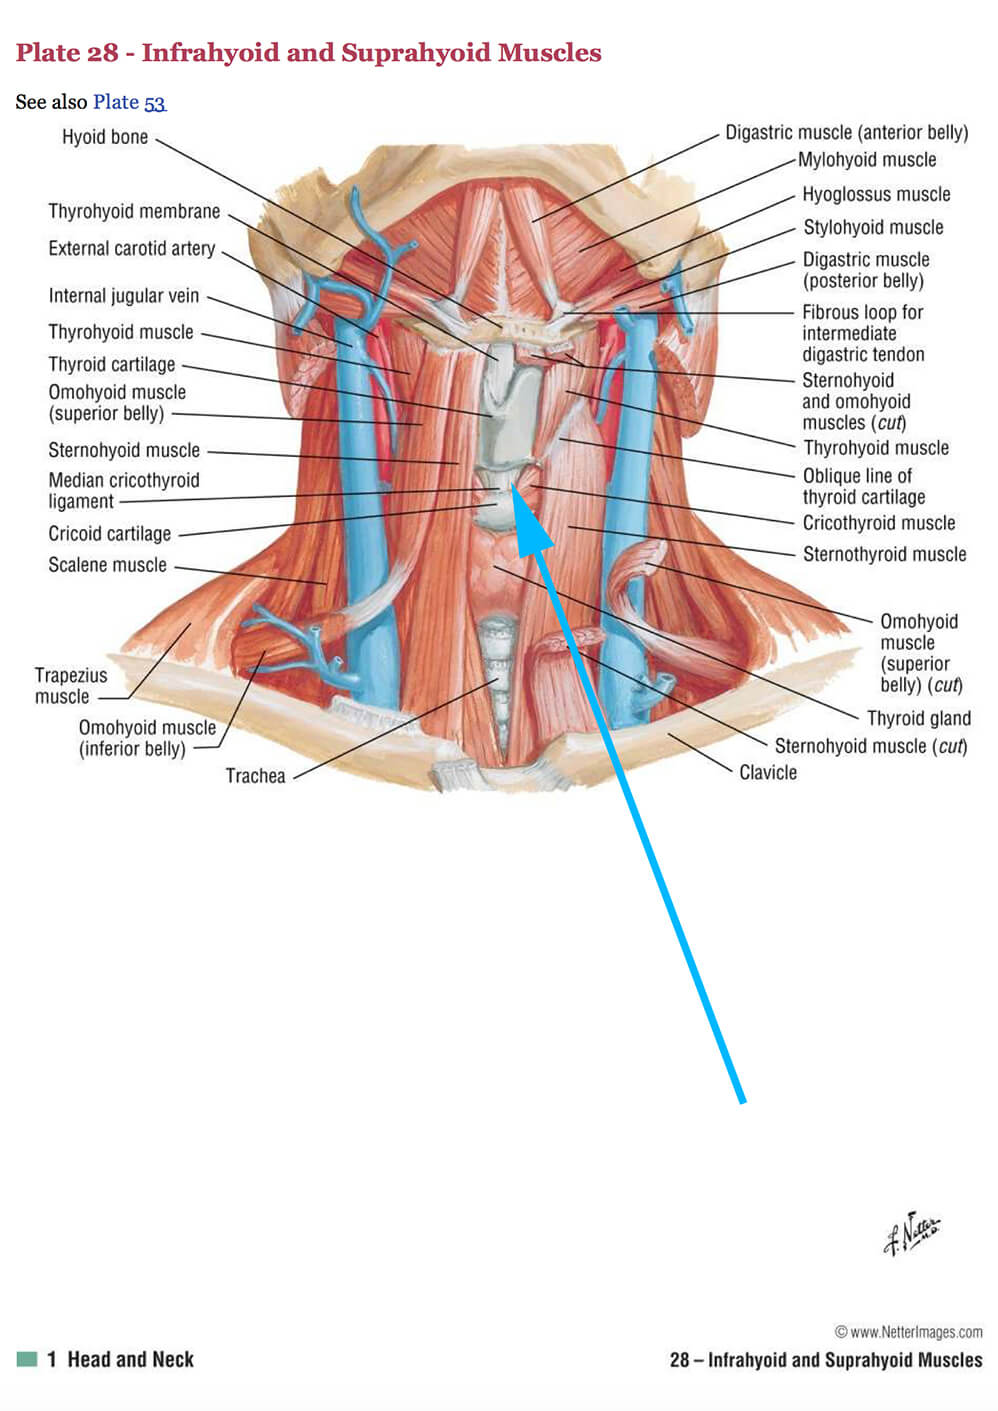 Anatomy of the Neck and Location of Thyroid Cartilage in Chondrolaryngoplasty